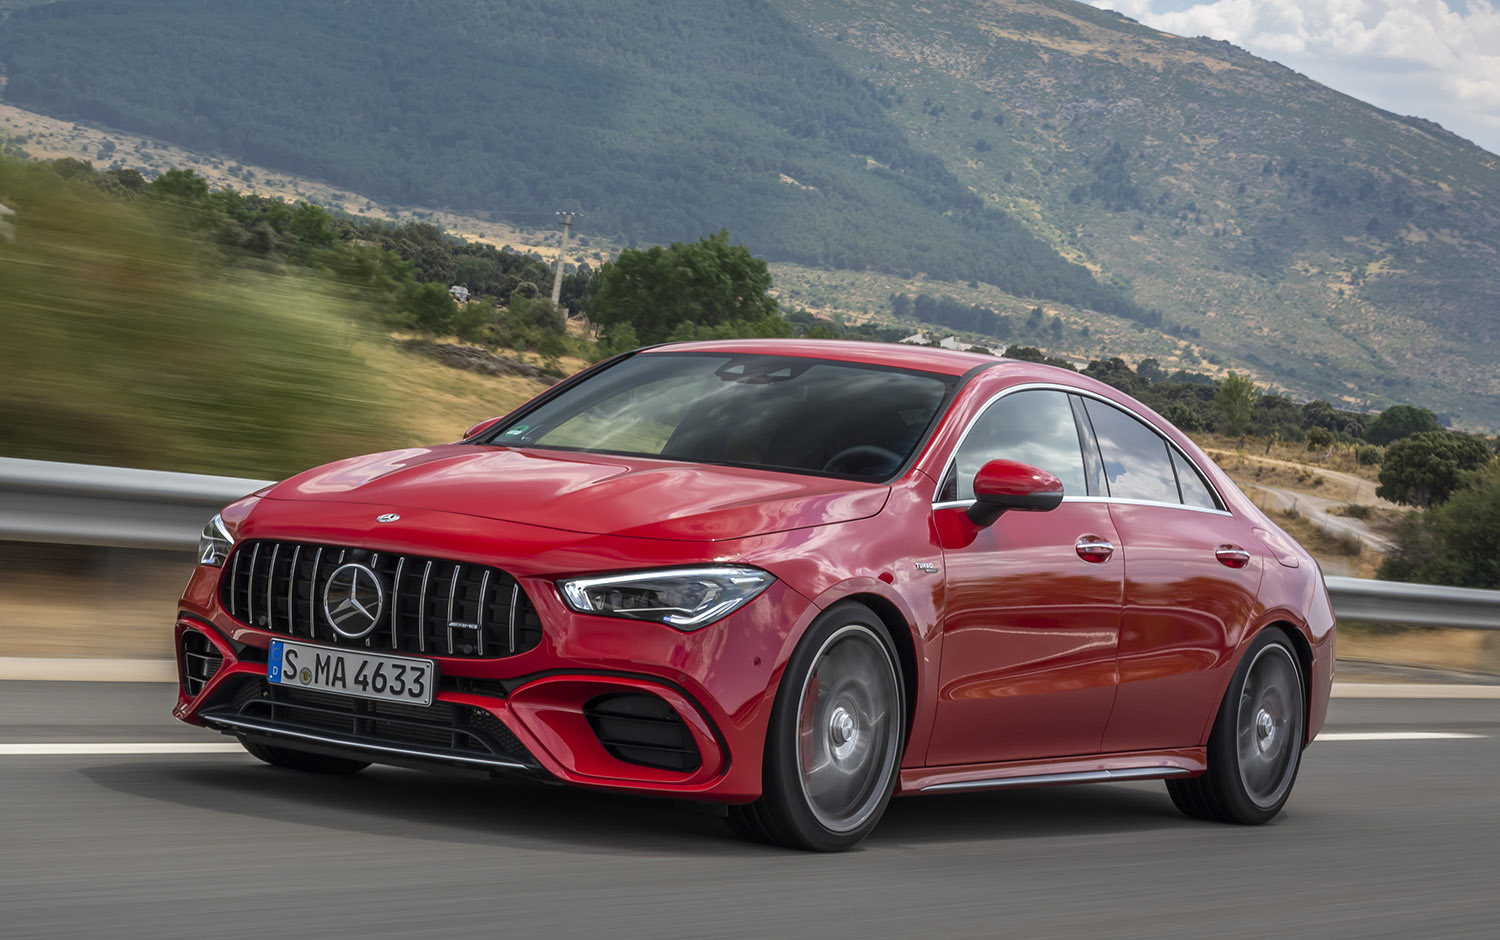 2019 Mercedes Amg A45 S And Cla45 S First Drive Review